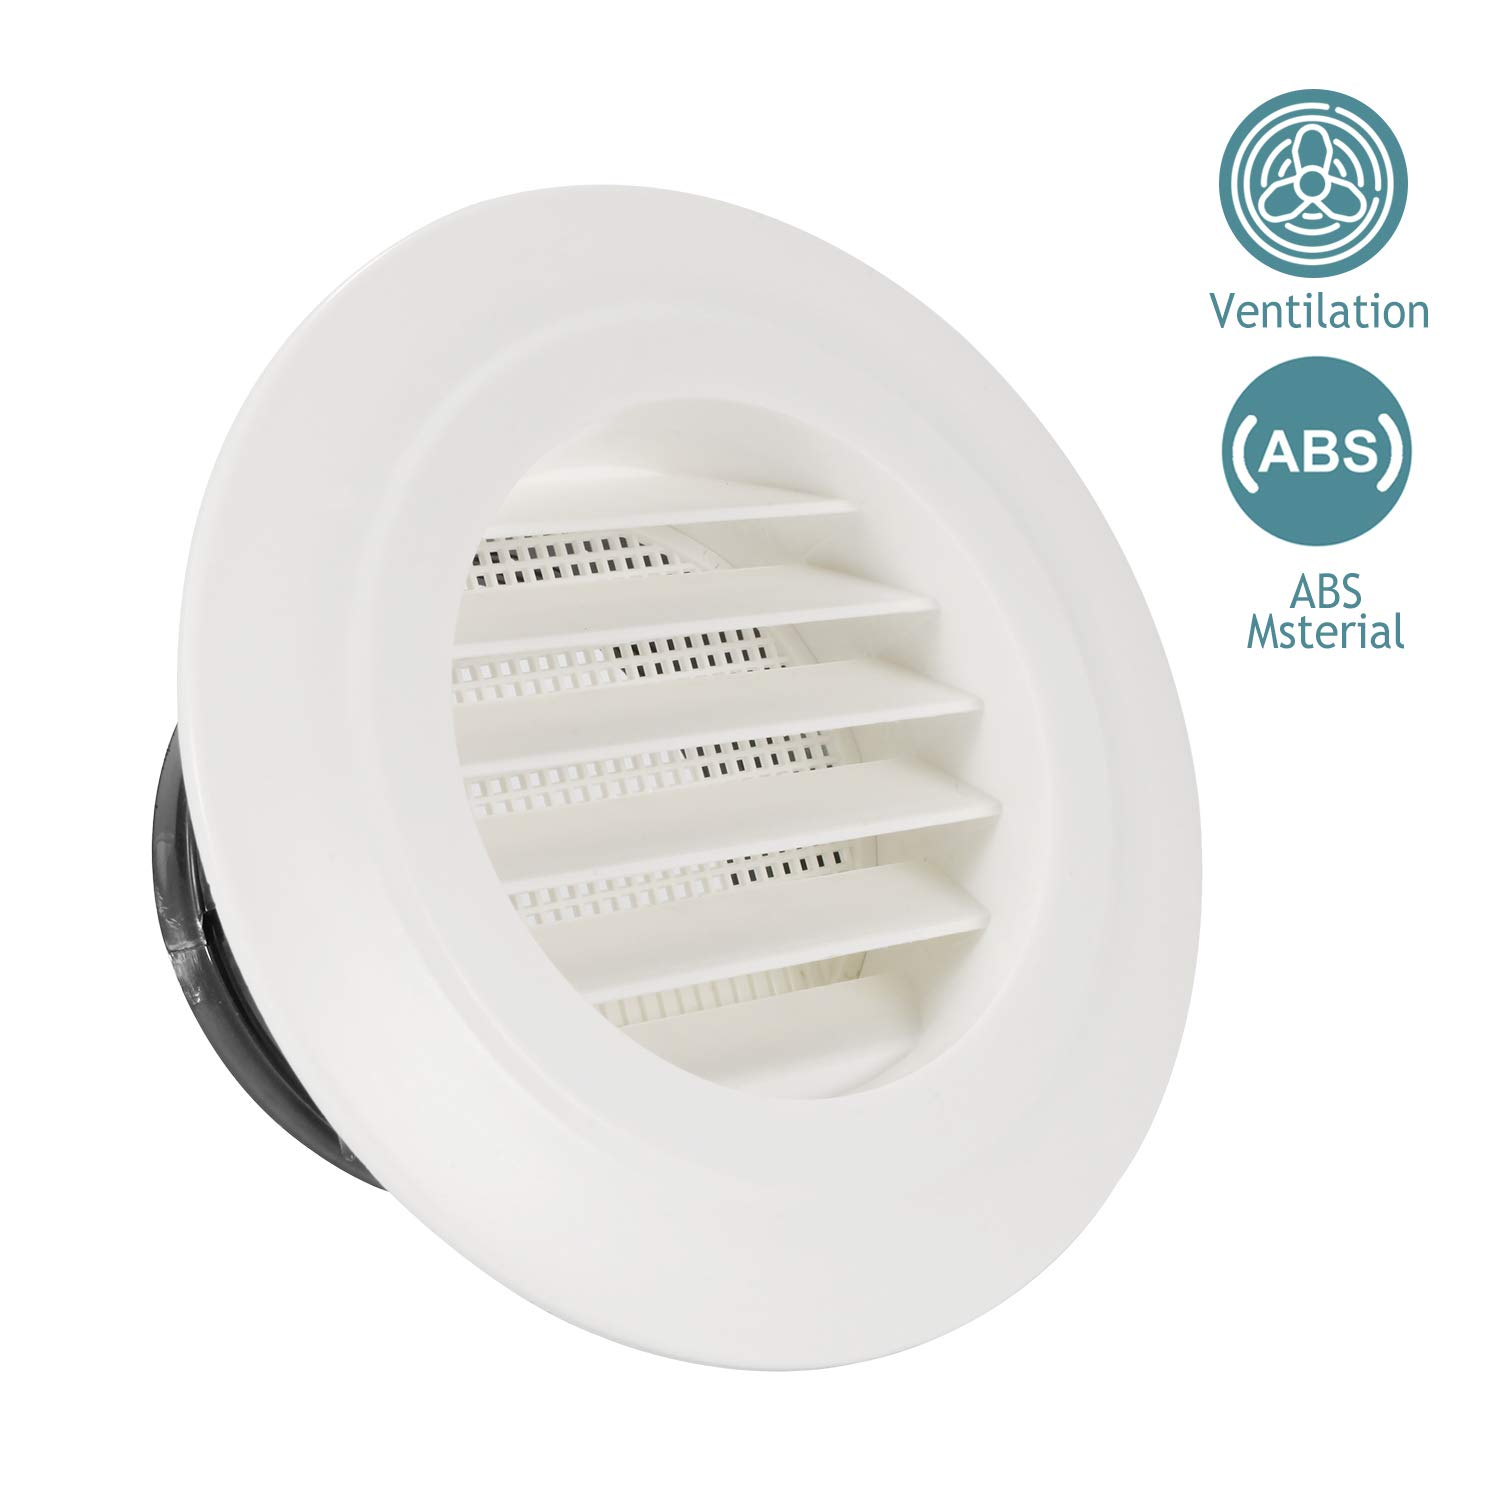 HG POWER 4 Inch Round Air Vent ABS Louver Grille Cover White Soffit Vent with Built-in Fly Screen Mesh for Bathroom Office Kitchen Ventilation